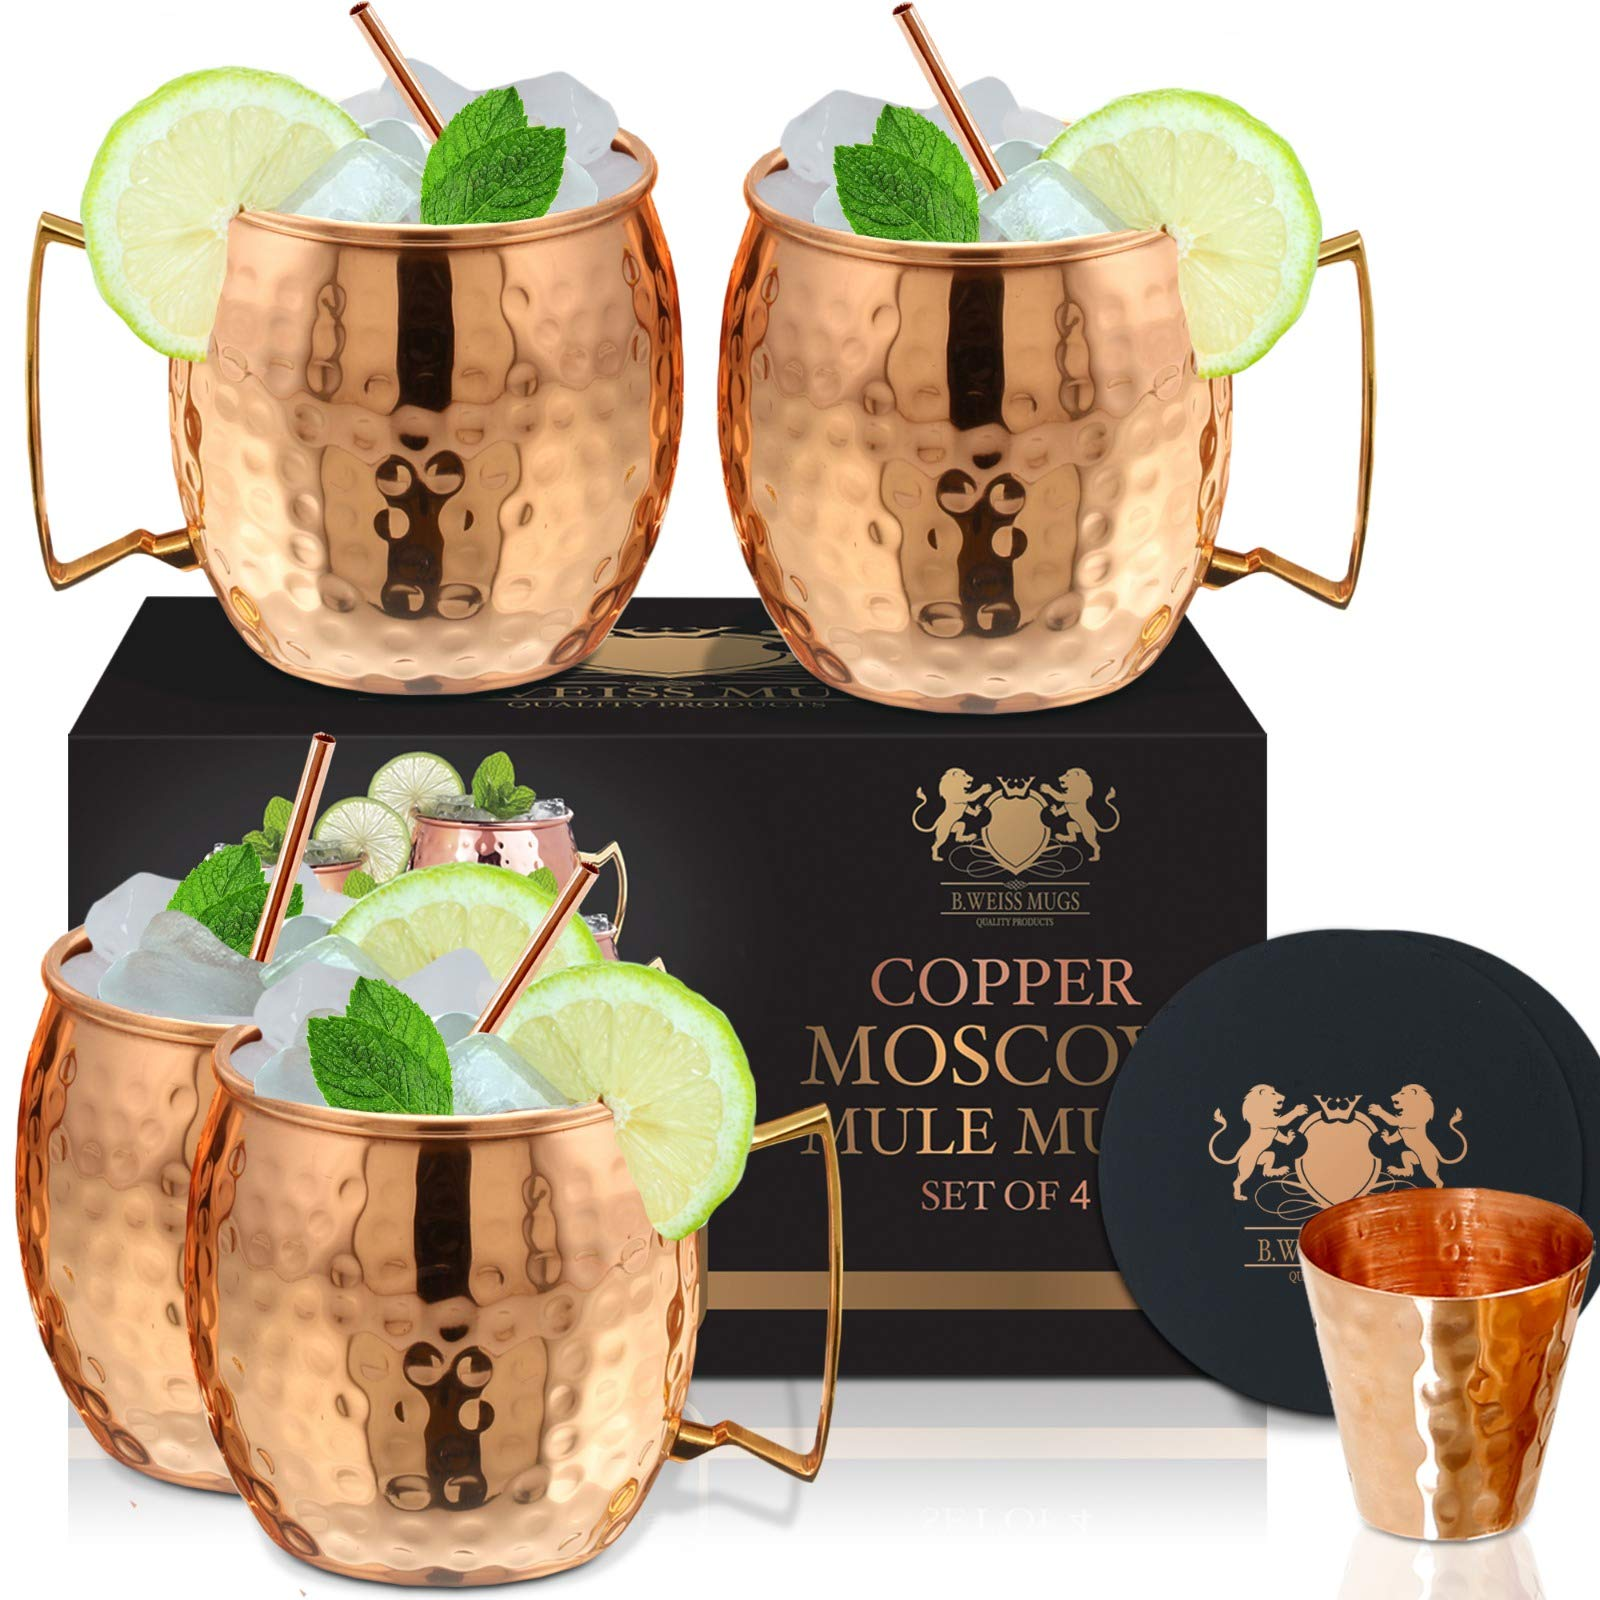 Moscow Mule Copper Mugs Set Of 4 By B.WEISS 100% Pure Copper +Bonus: 4 copper straws+4 coasters 1 shot mugHandmade Hammered Copper Cups by B. WEISS